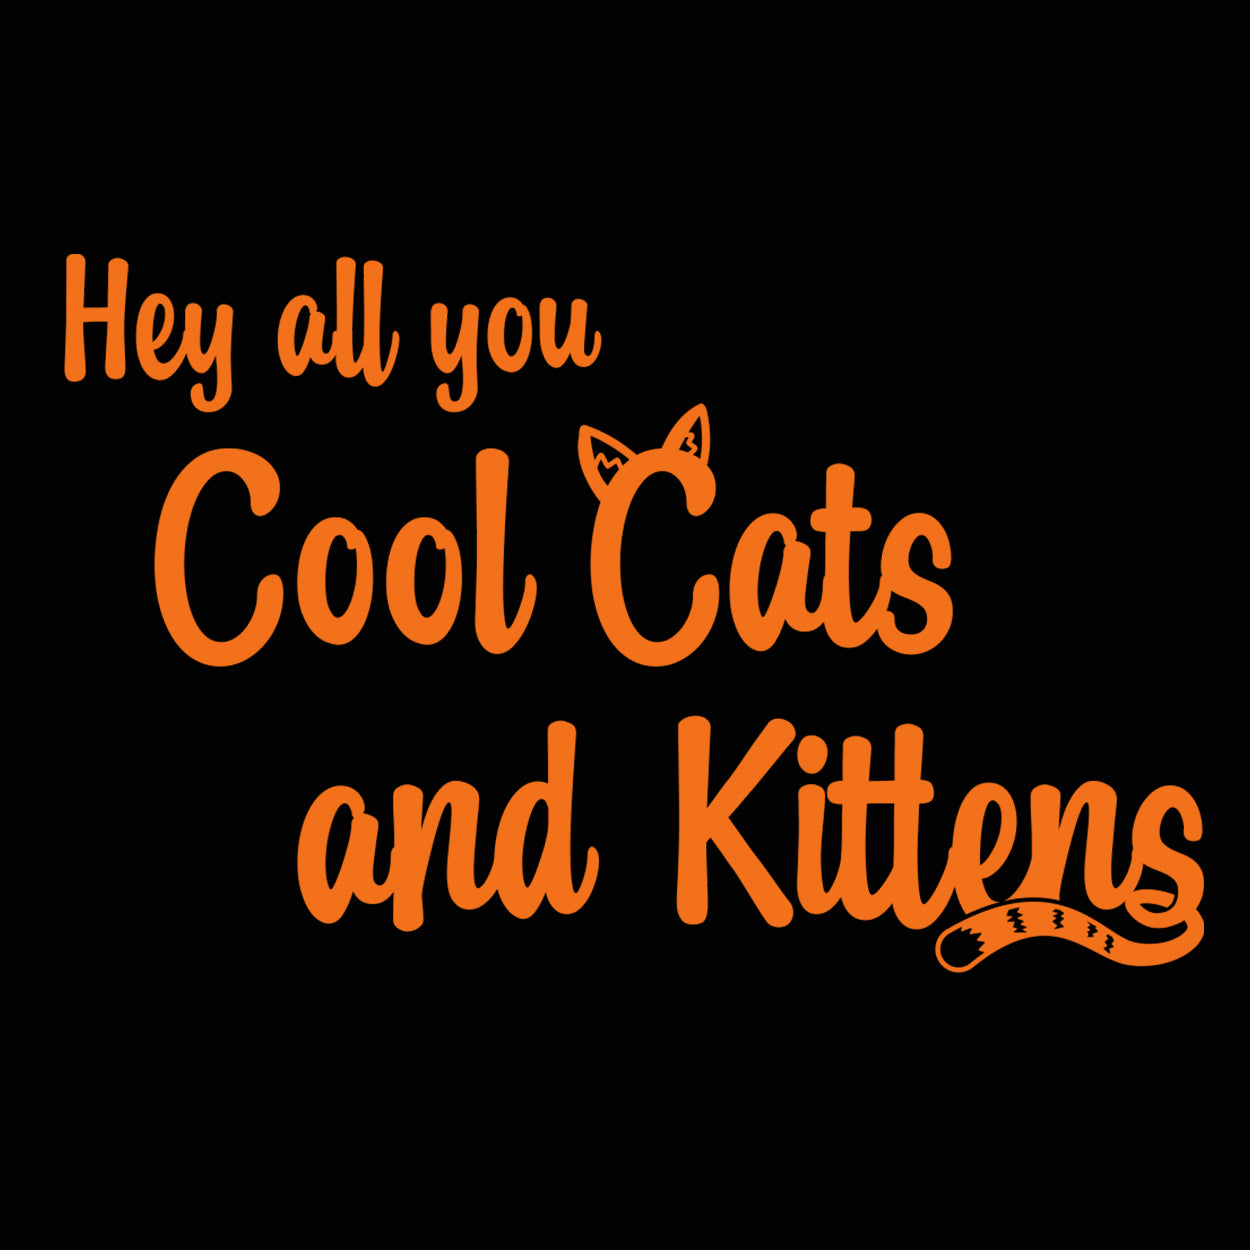 Hey All You Cool Cats and Kittens - DonkeyTees